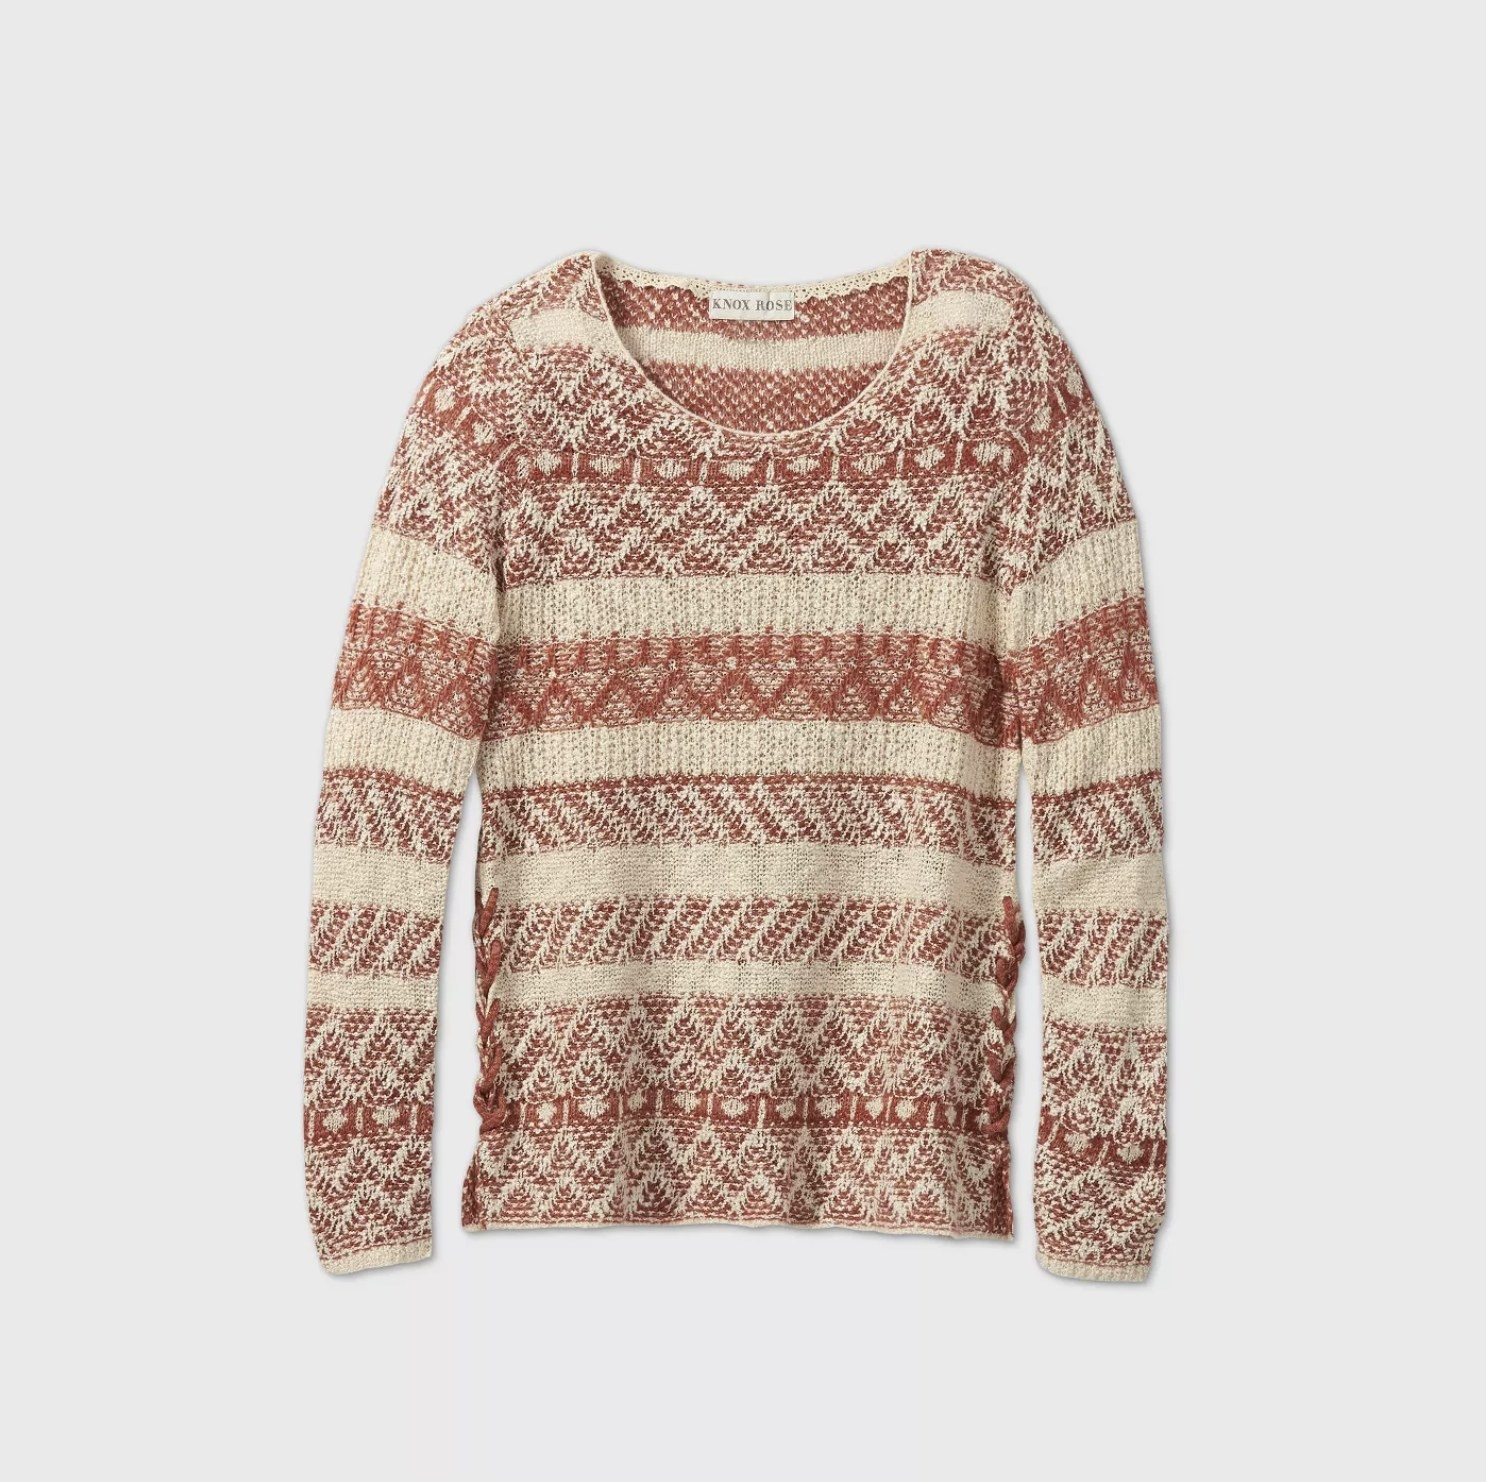 A red and cream crewneck sweater with a knitted striped design